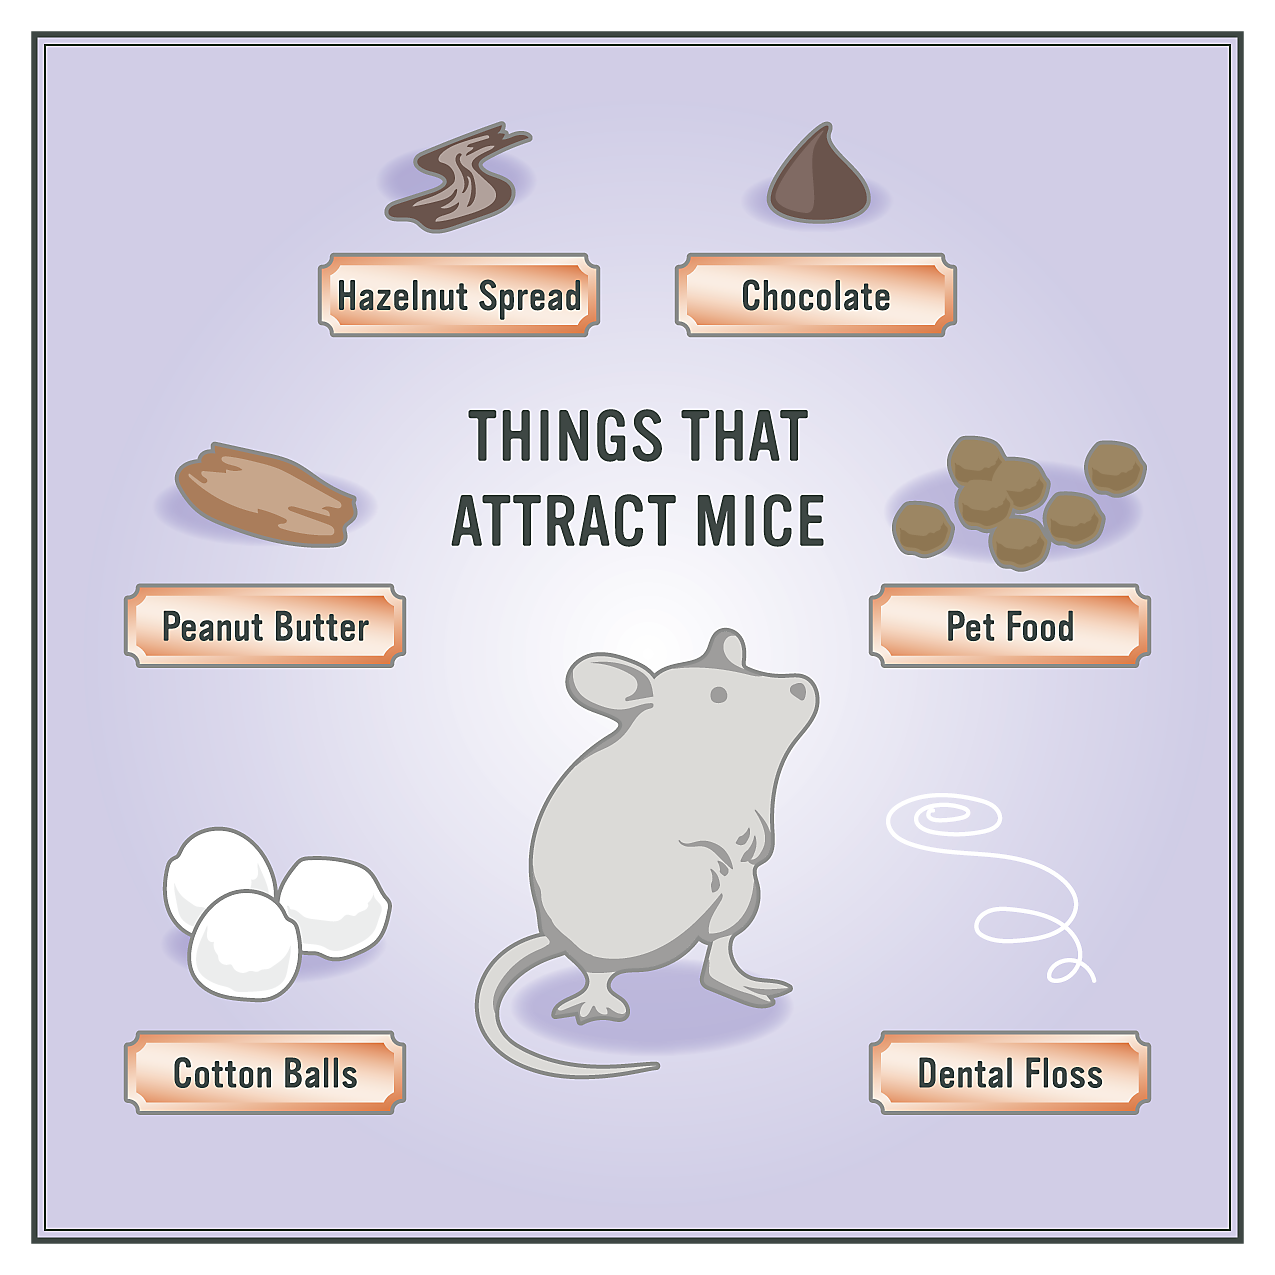 How to Get Rid of Mice in 5 Easy Steps